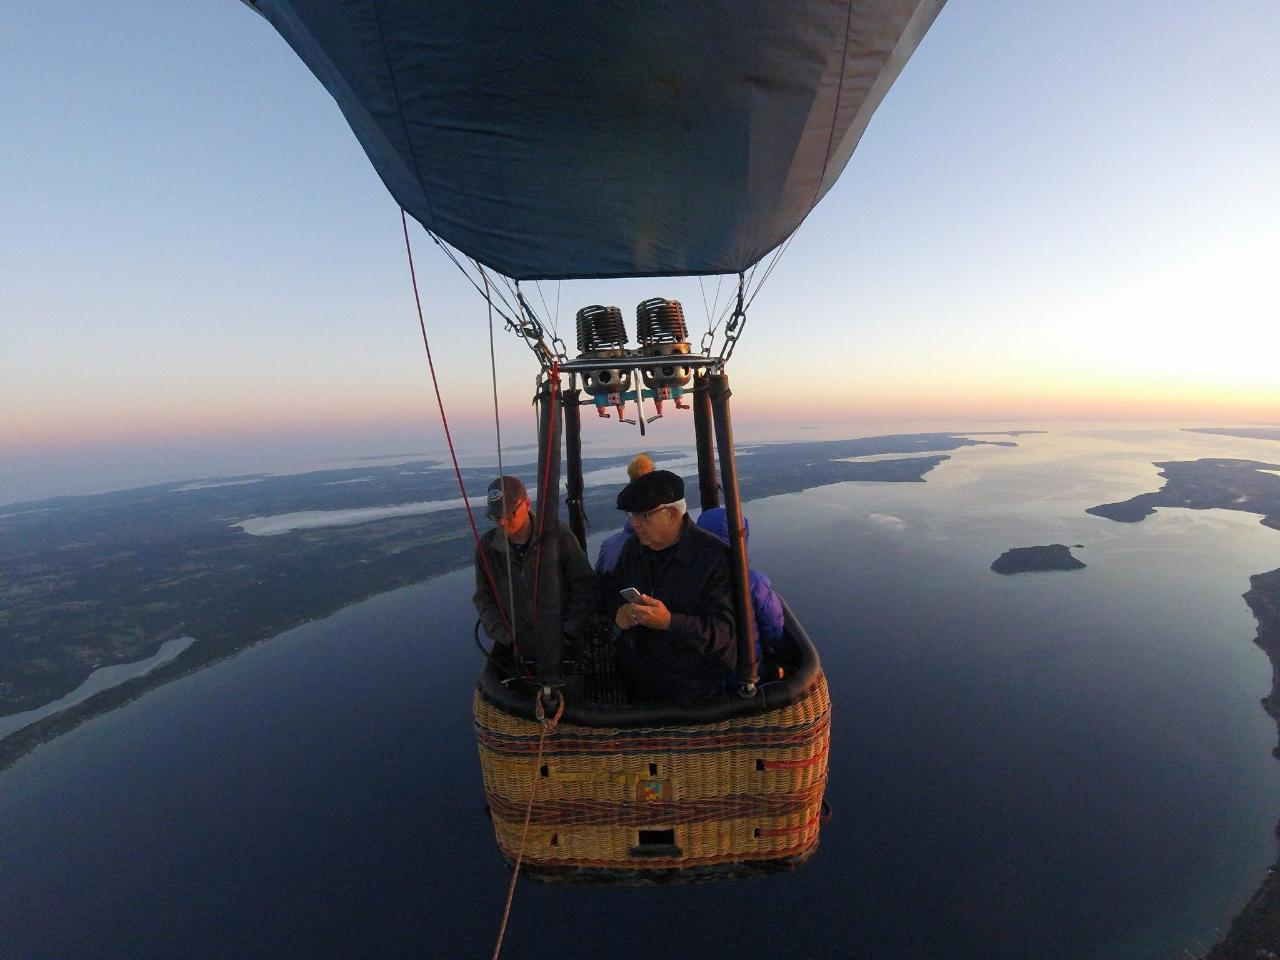 Weekday Private Flight / Small Balloon in Traverse City